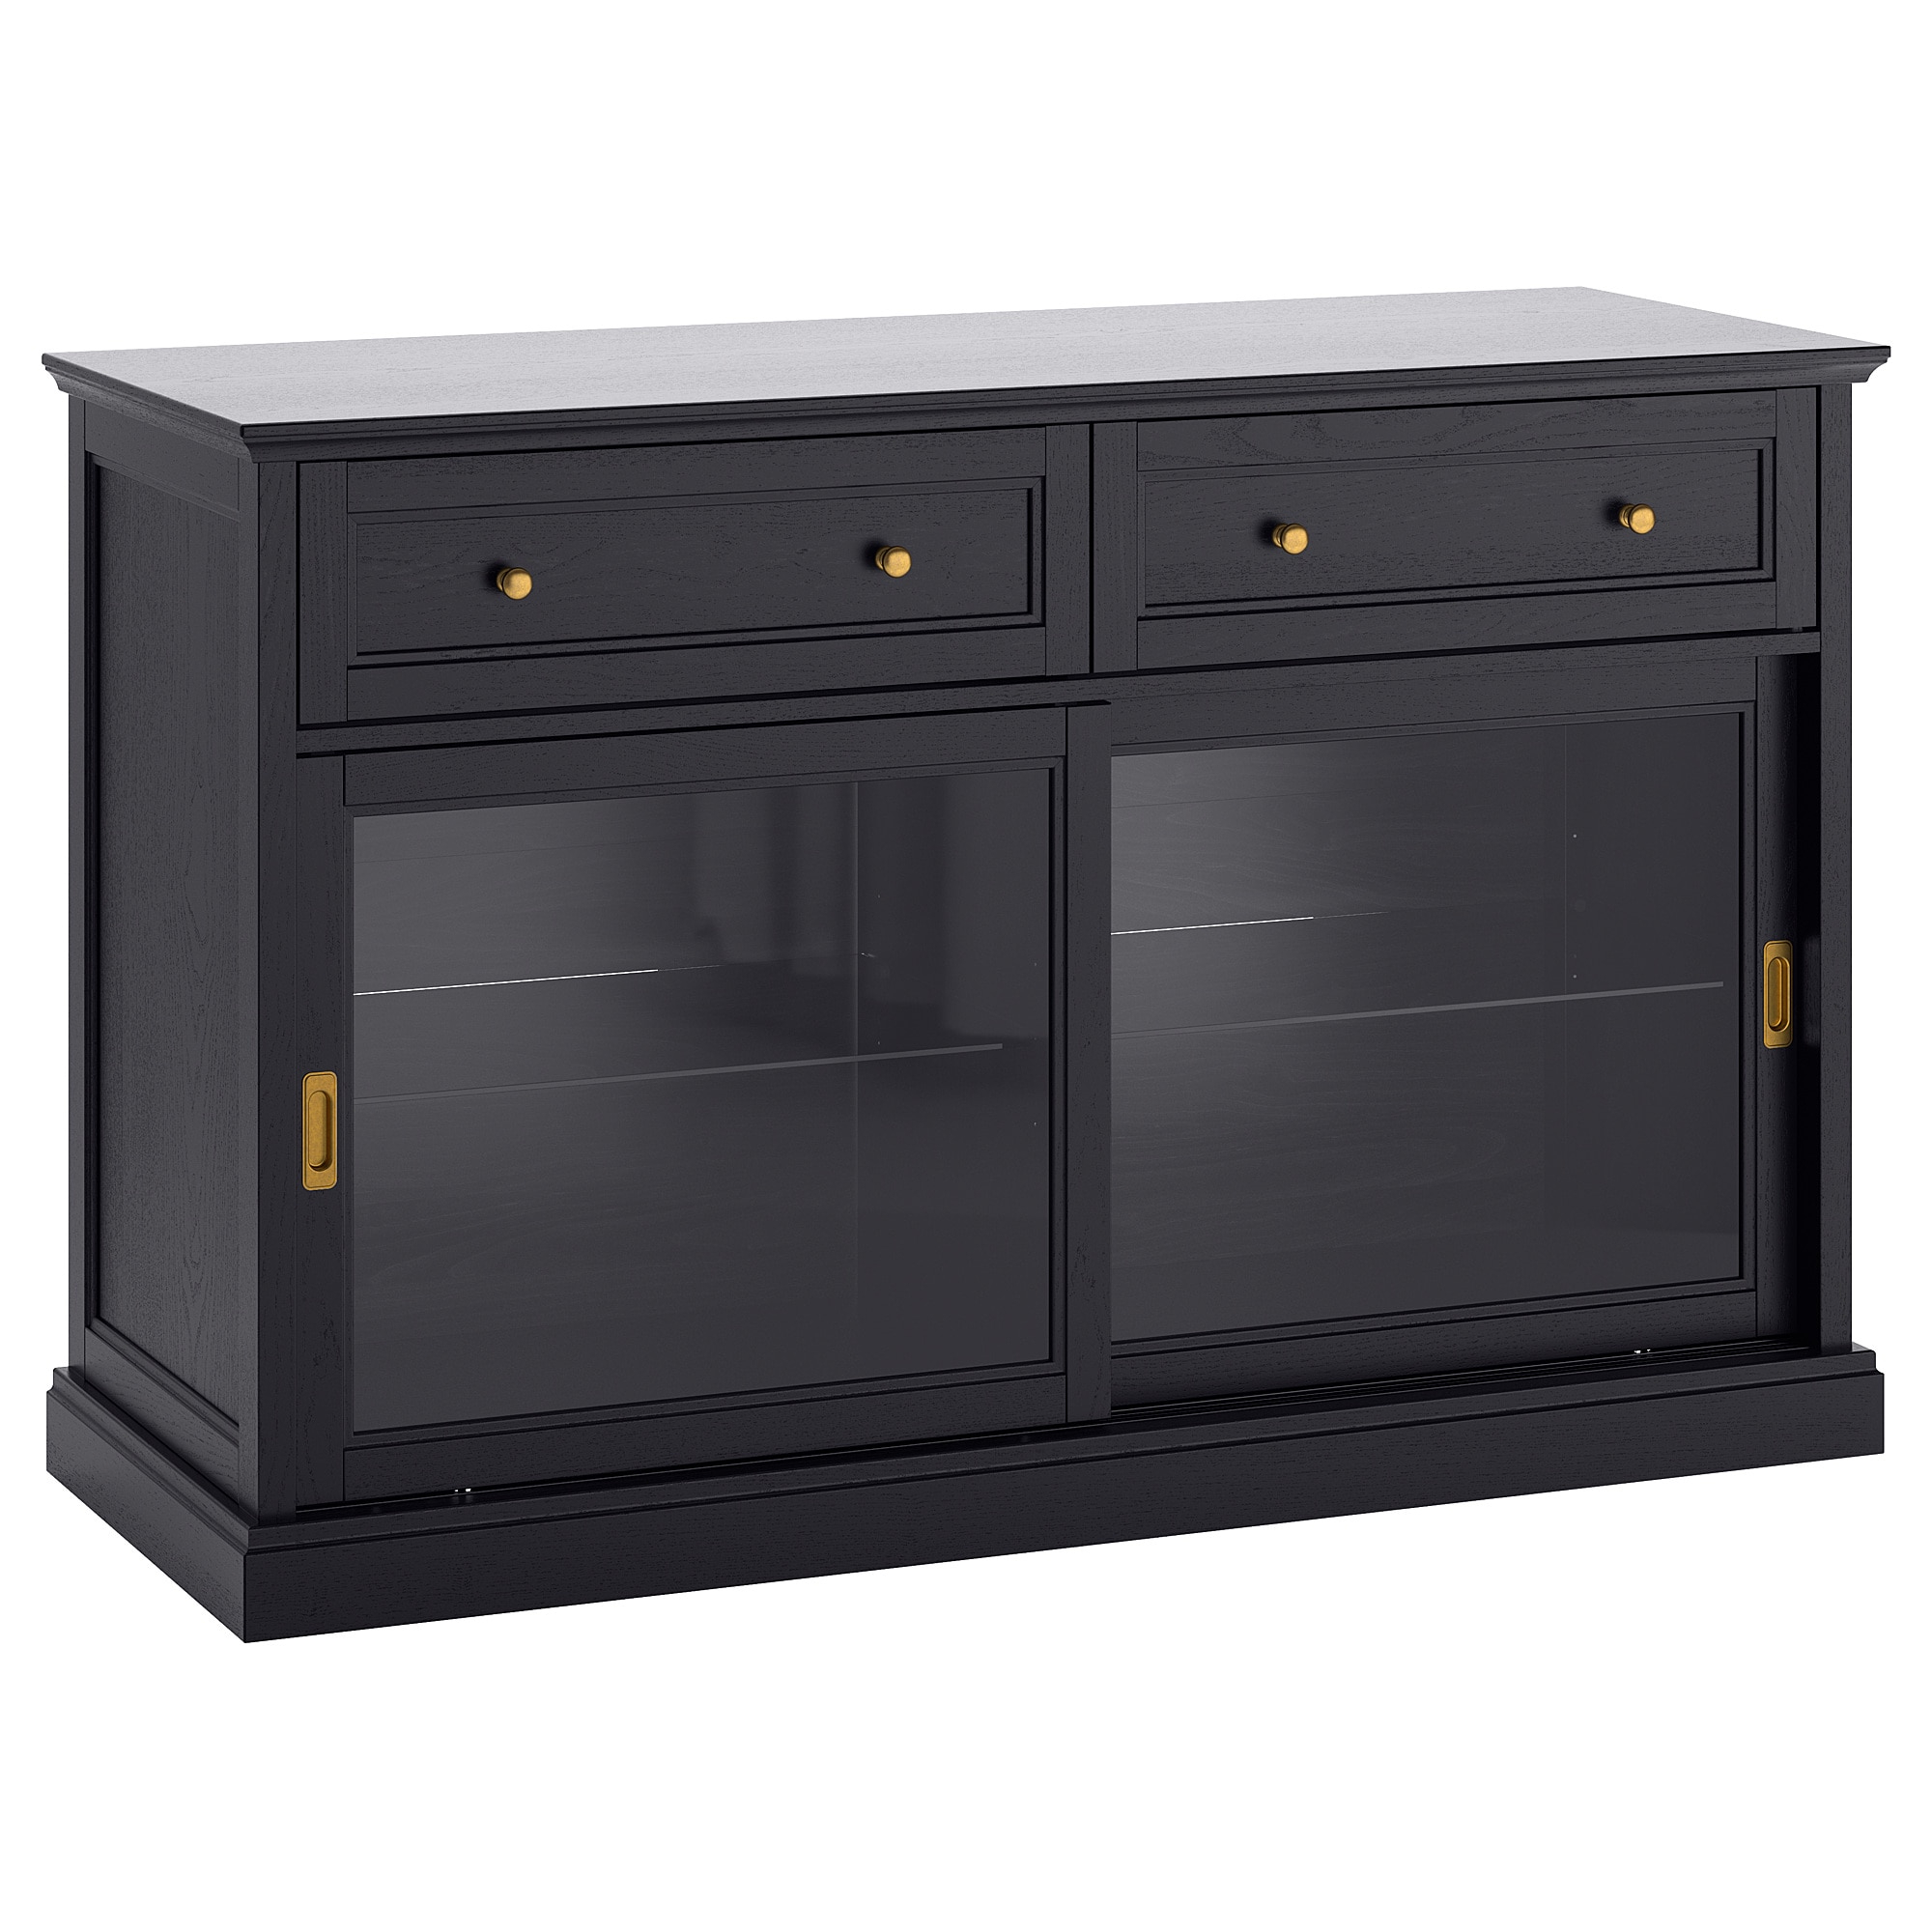 2018 Malsjö Sideboard Basic Unit Black Stained 145 X 92 Cm – Ikea For Open Shelf Brass 4 Drawer Sideboards (View 19 of 20)